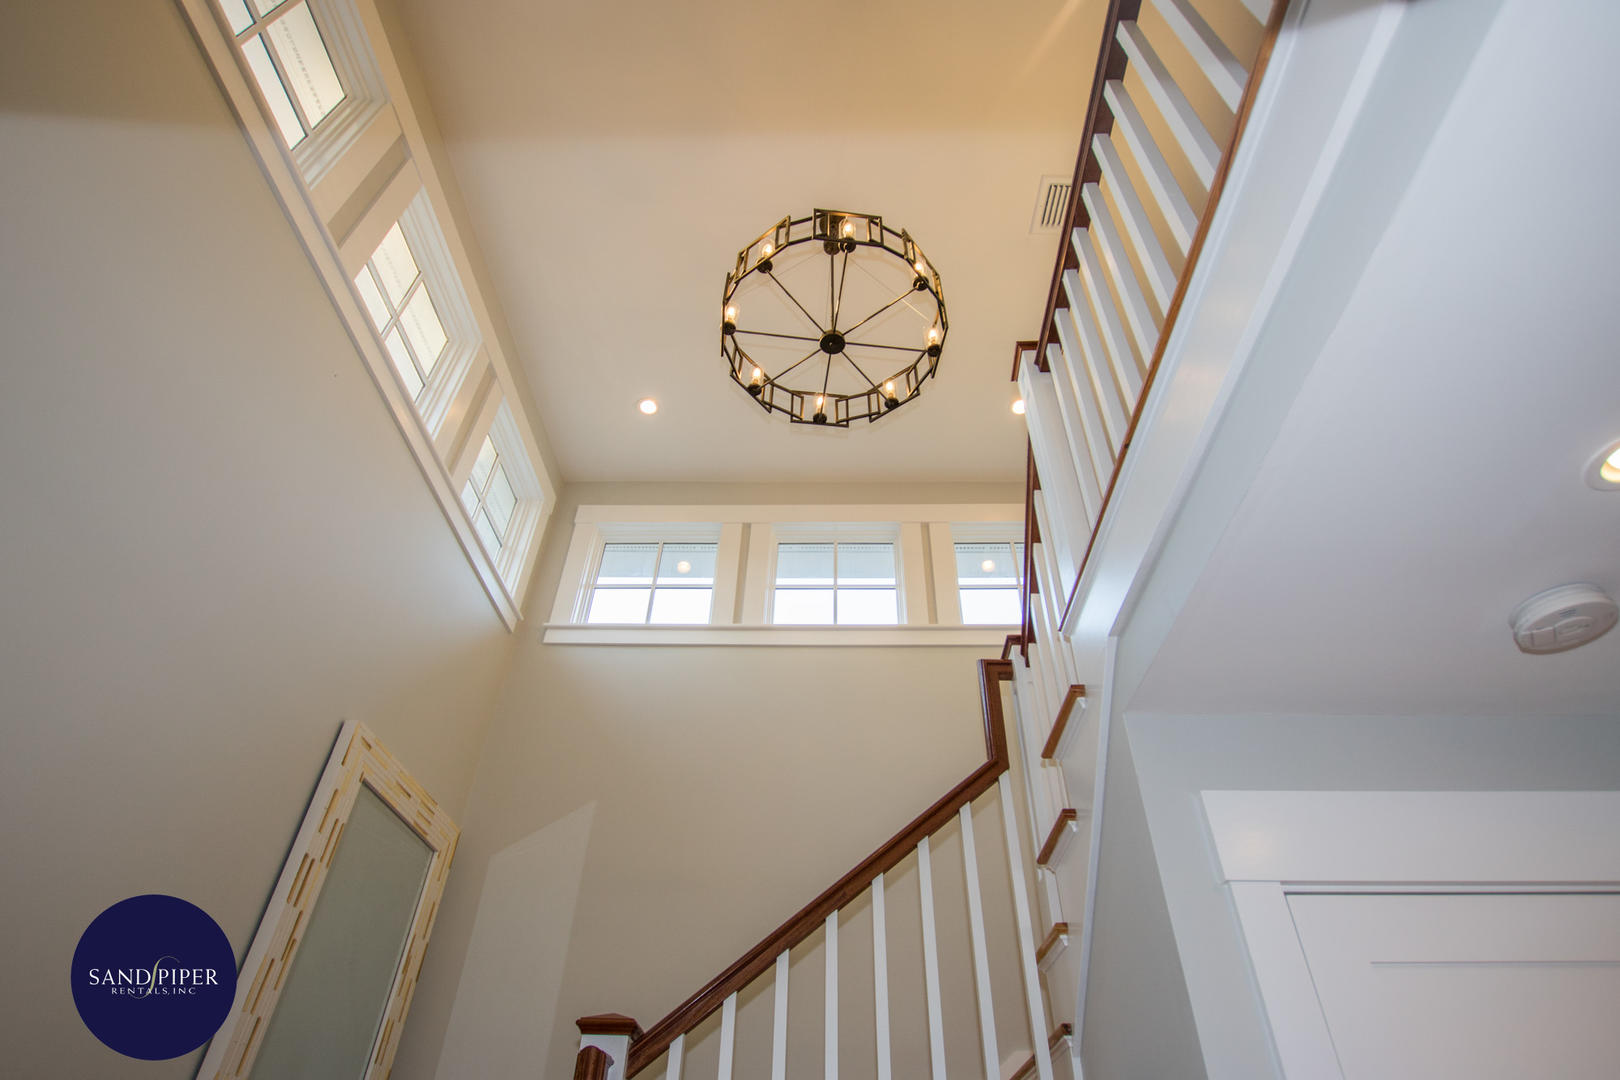 Stairway leading to second floor